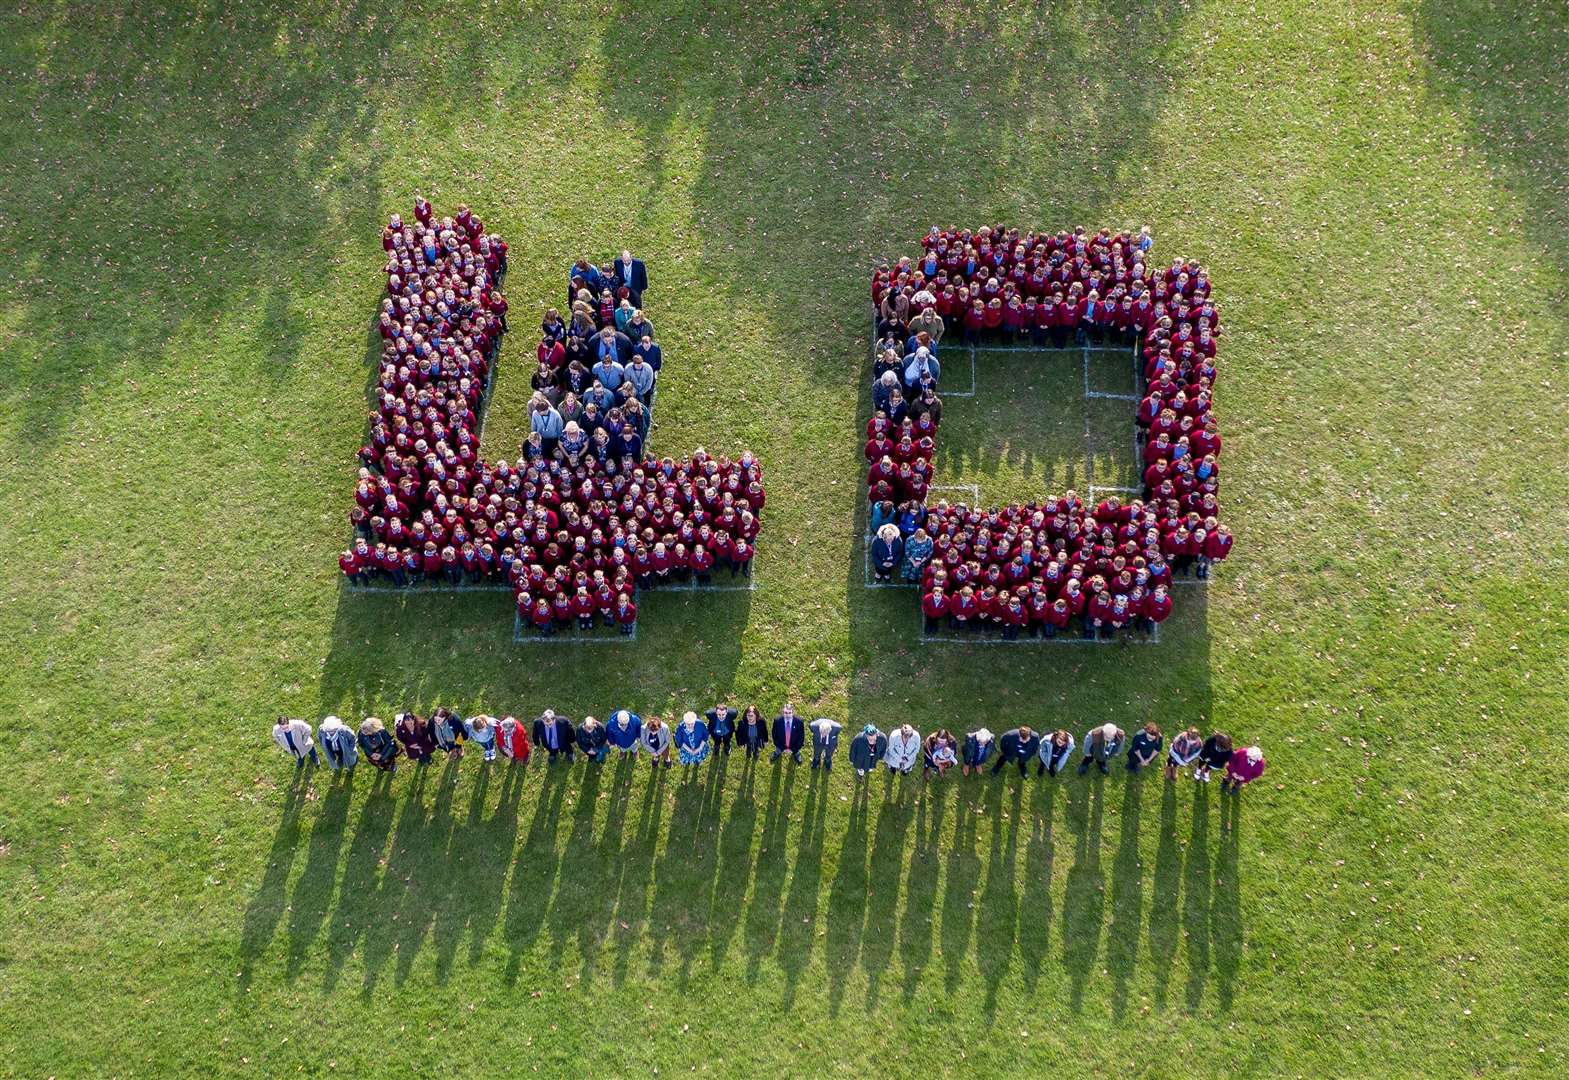 Pupils and staff celebrate four decades of Downham Market primary school